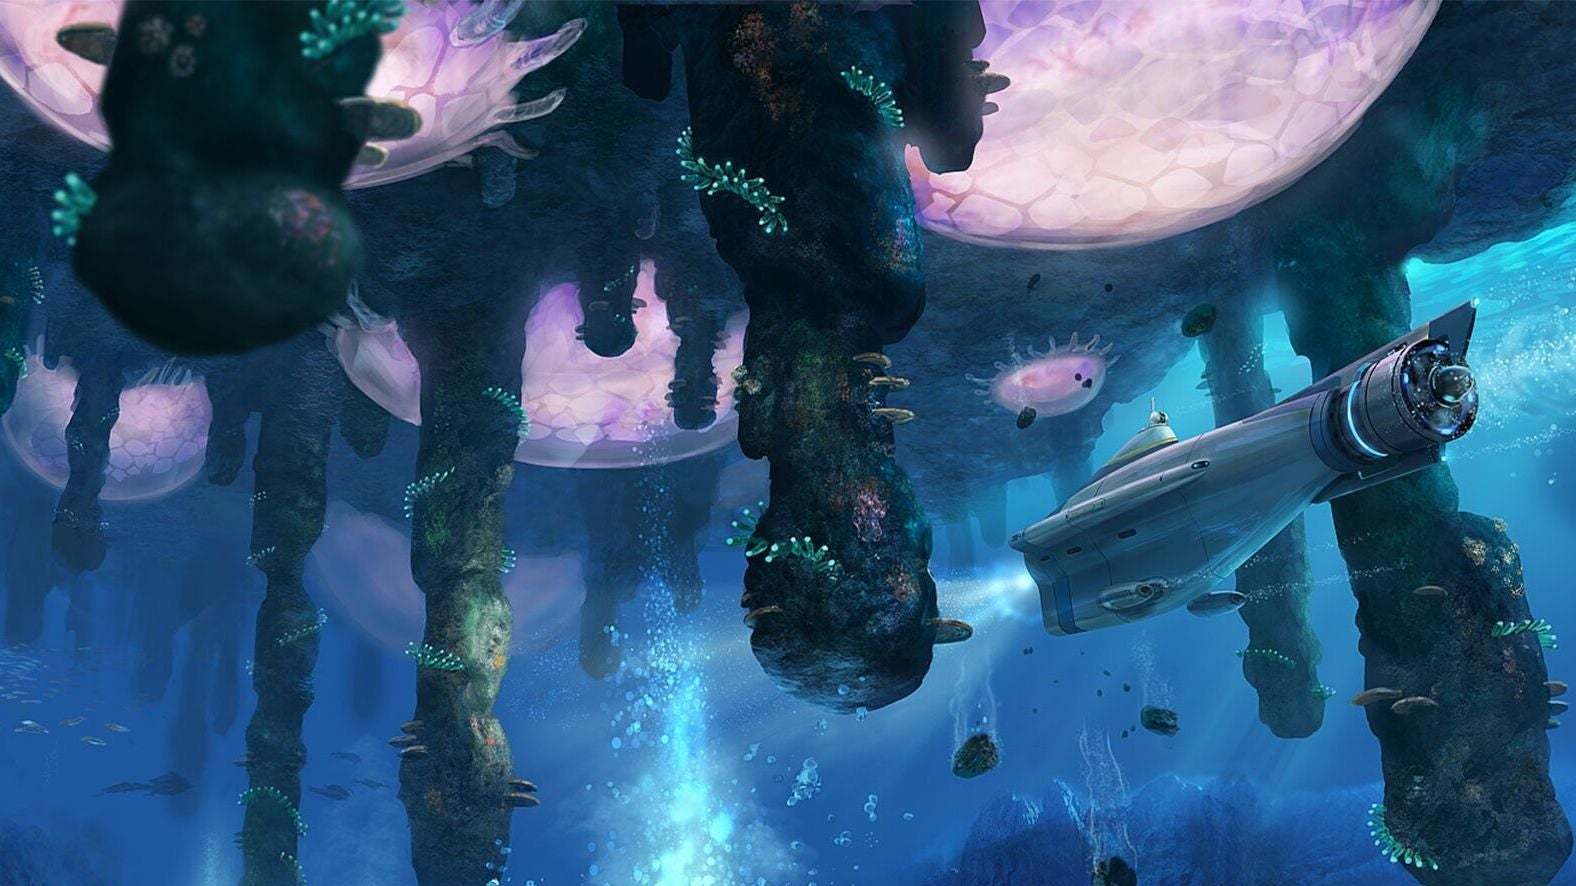 Subnautica Scanner Room Guide : I don't know if those exist, but this subnautica 1.0 build doesn't use any mods, cheats, or whatever along these lines.